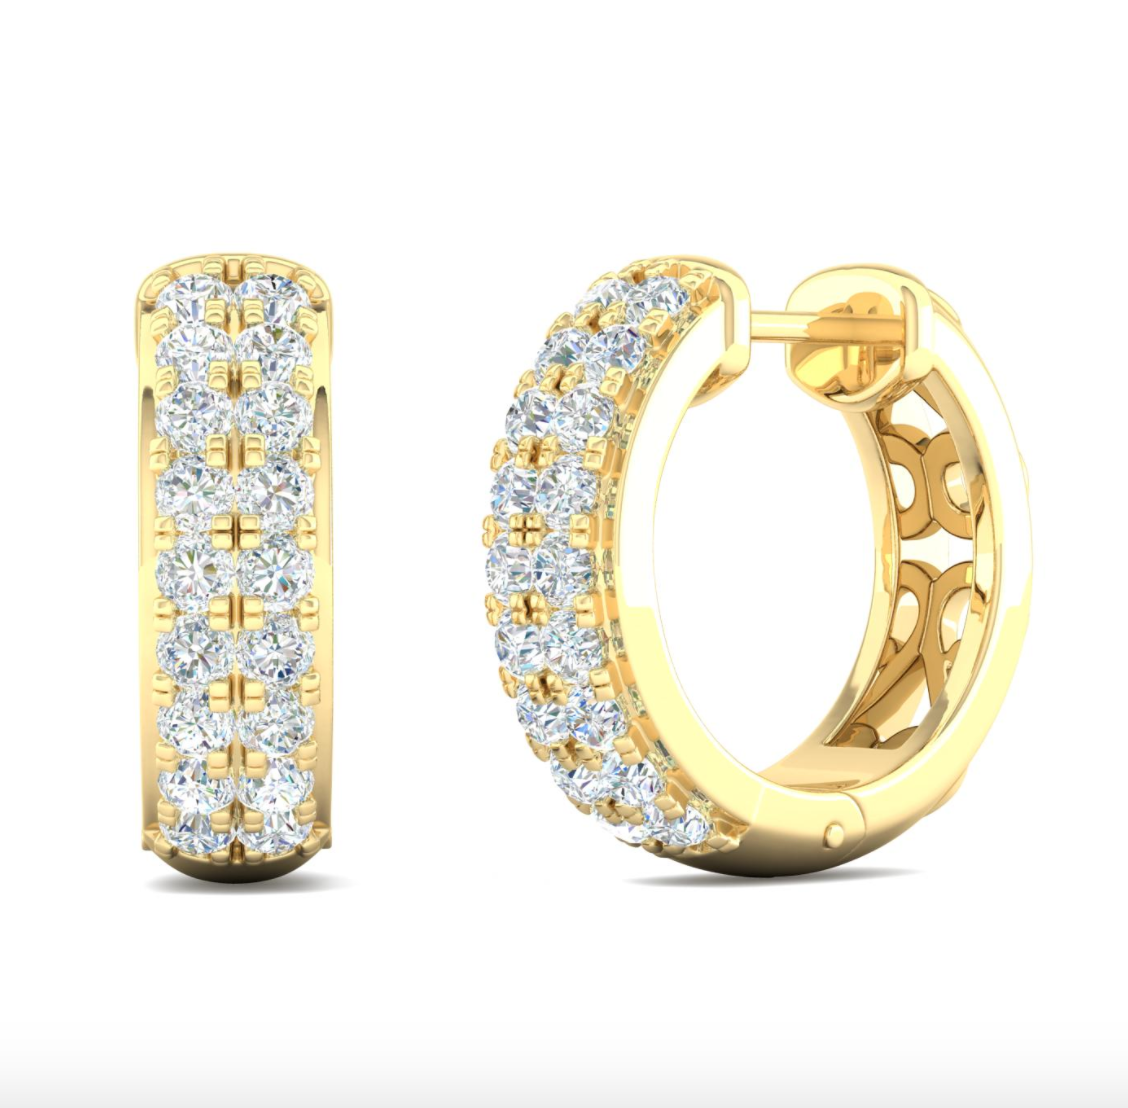 14kt Gold Diamond Hoops / Huggies Style Earrings Available in Two-Tone, White or yellow Gold